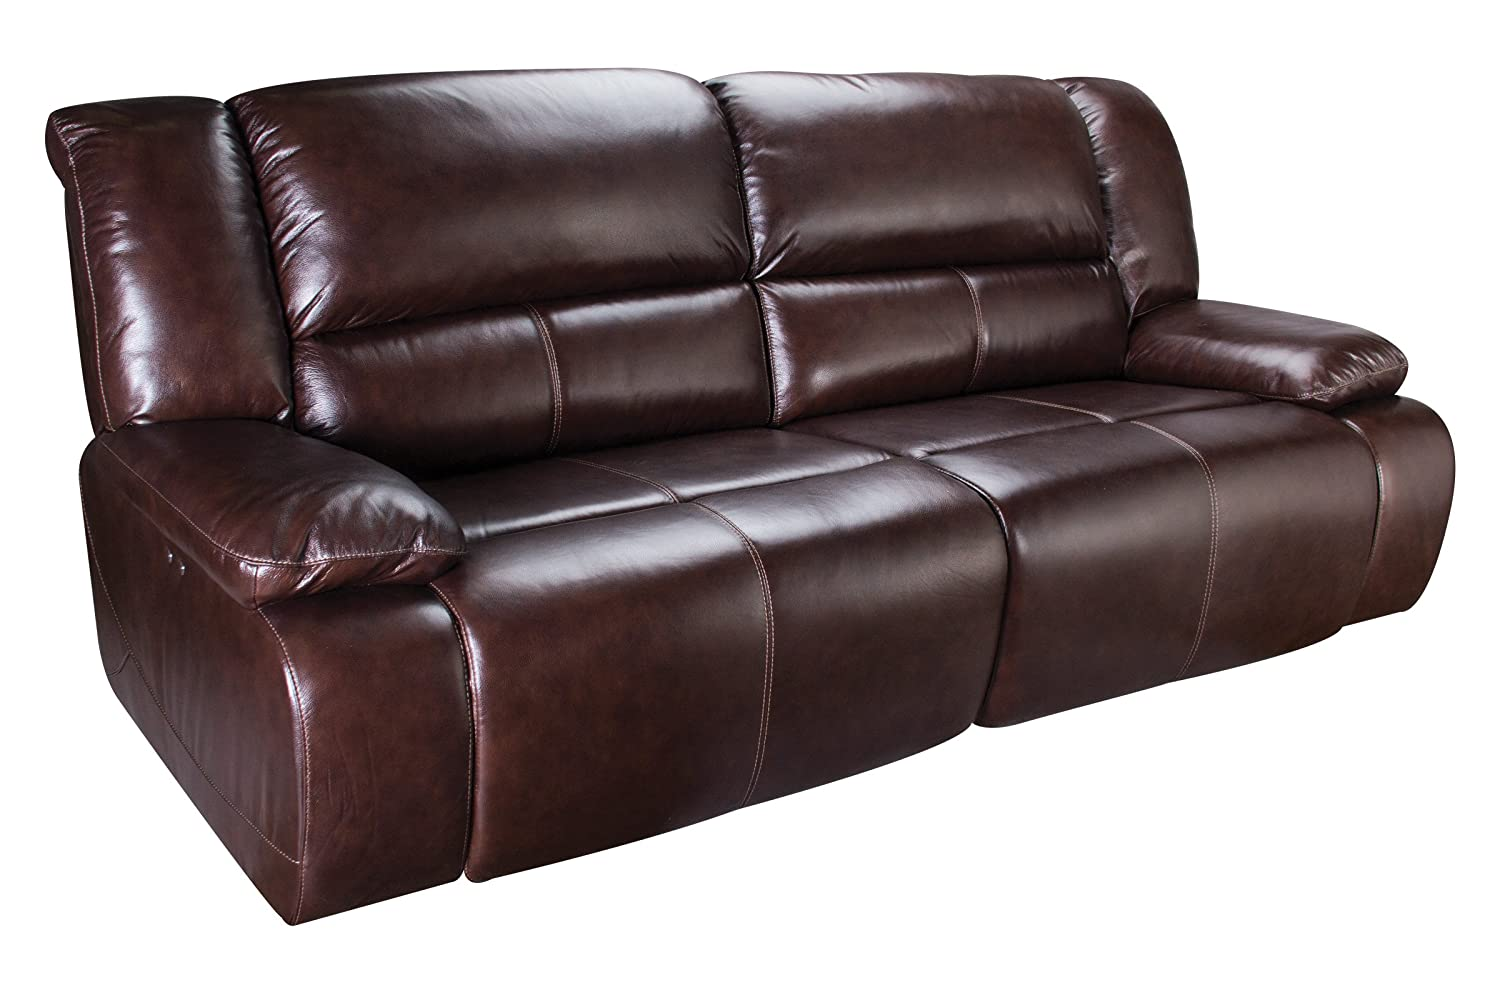 Amazon.com: Amarillo Power Reclining Leather Sofa: Kitchen ...